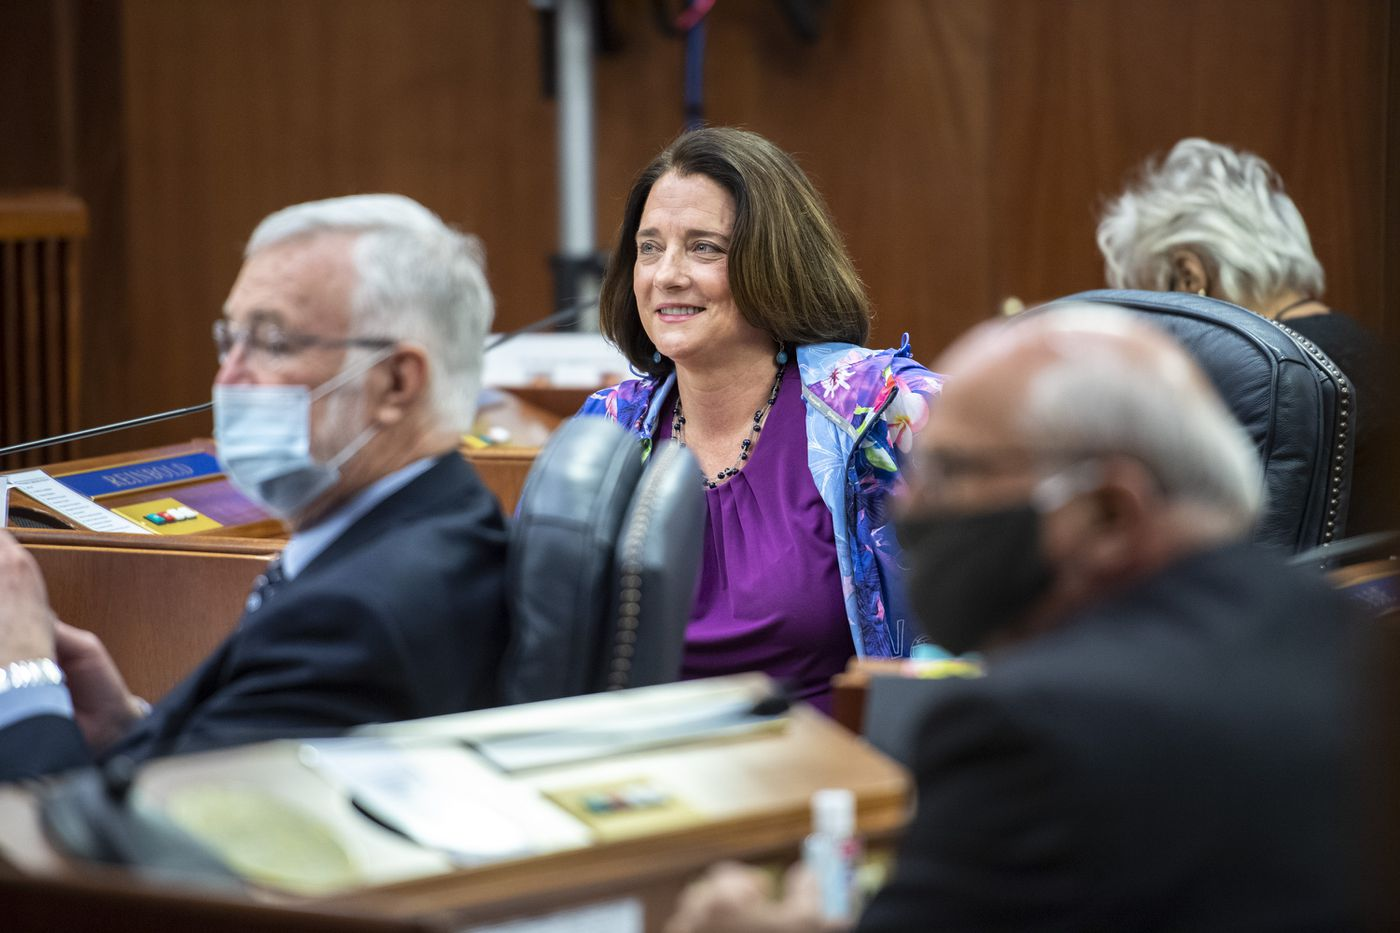 Sen. Lora Reinbold, R-Eagle River, center, goes maskless as Senators take their seats at the Capitol under new health mandates on Monday, May 18, 2020, as they consider Gov. Mike Dunleavy's proposed use of federal Covid-19 money. (Photo by Michael Penn)